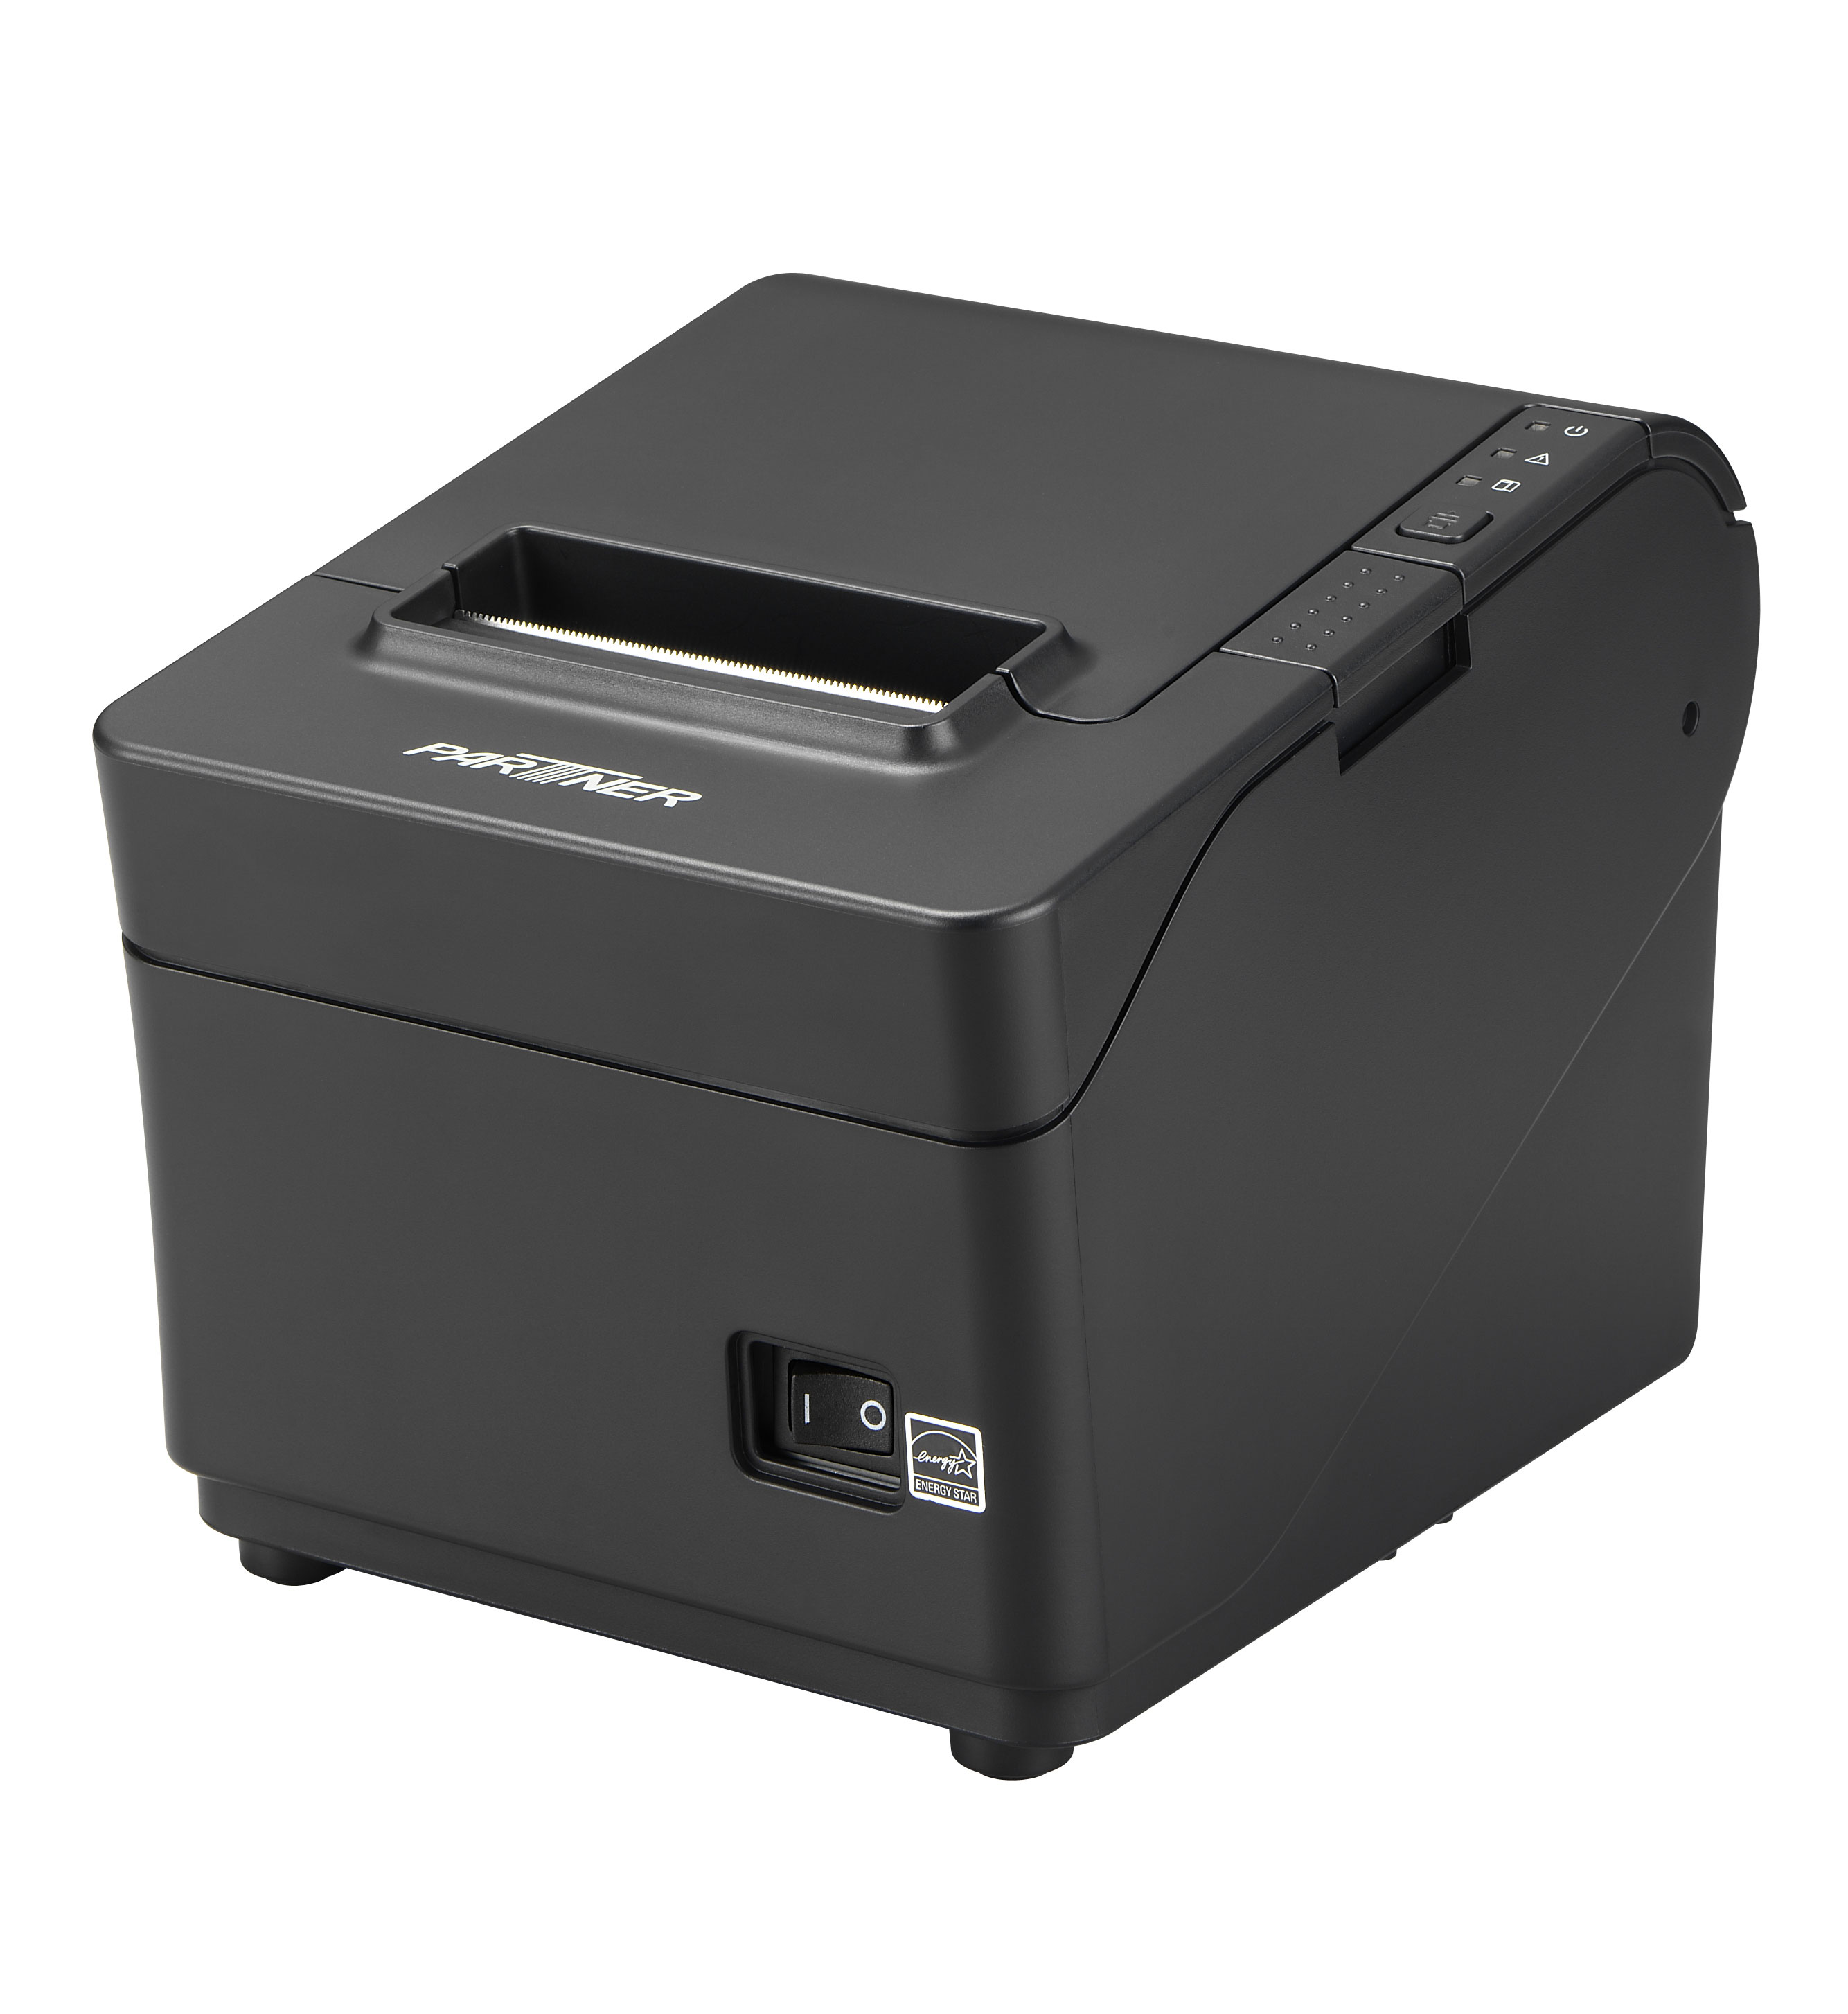 Partner Tech RP800 low cost POS printer